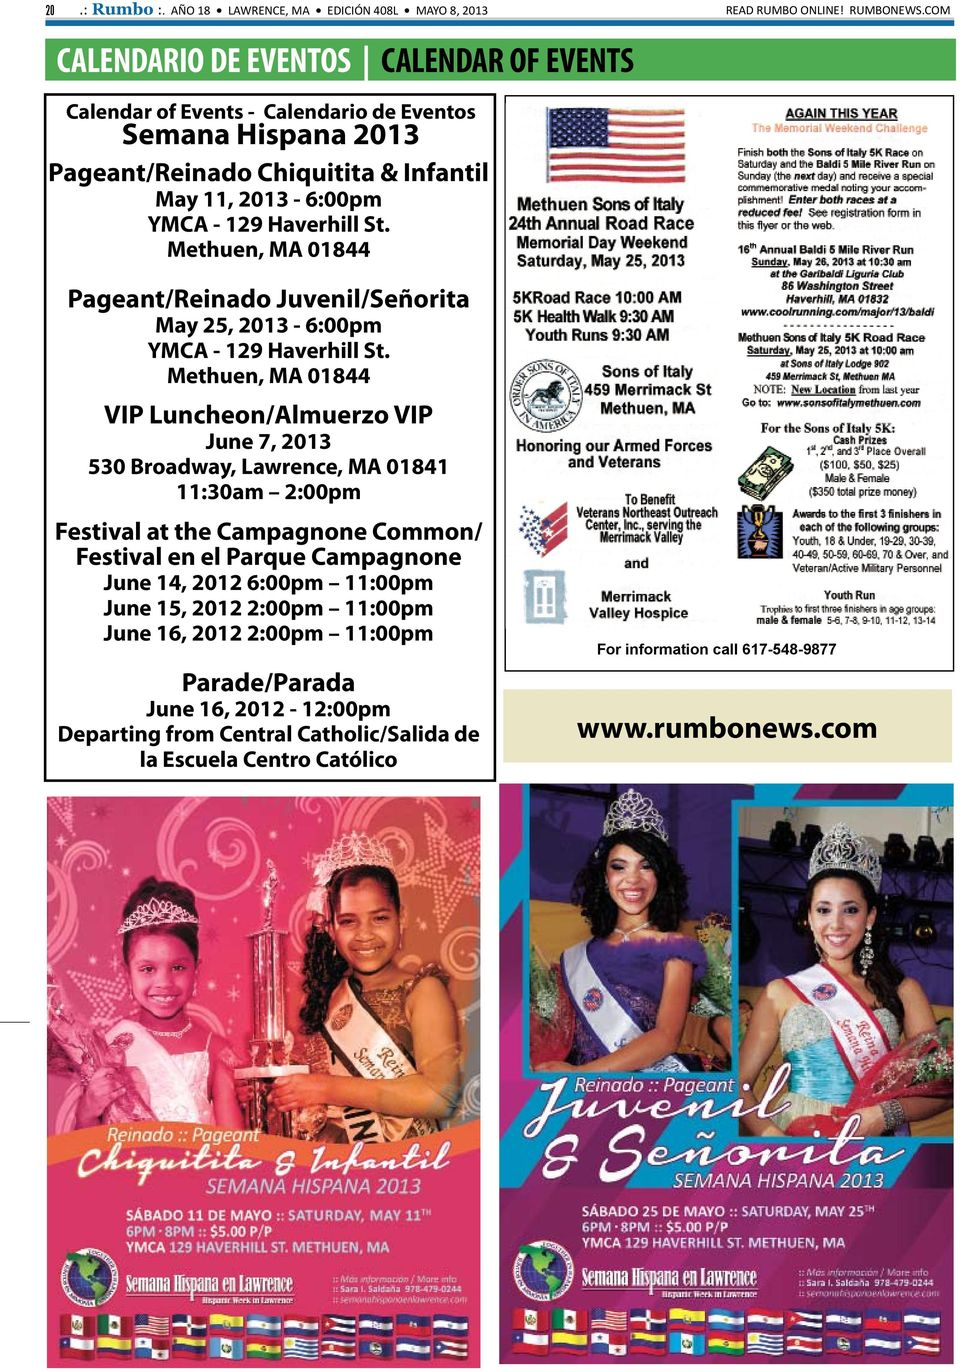 Methuen, MA 01844 Pageant/Reinado Juvenil/Señorita May 25, 2013-6:00pm YMCA - 129 Haverhill St.